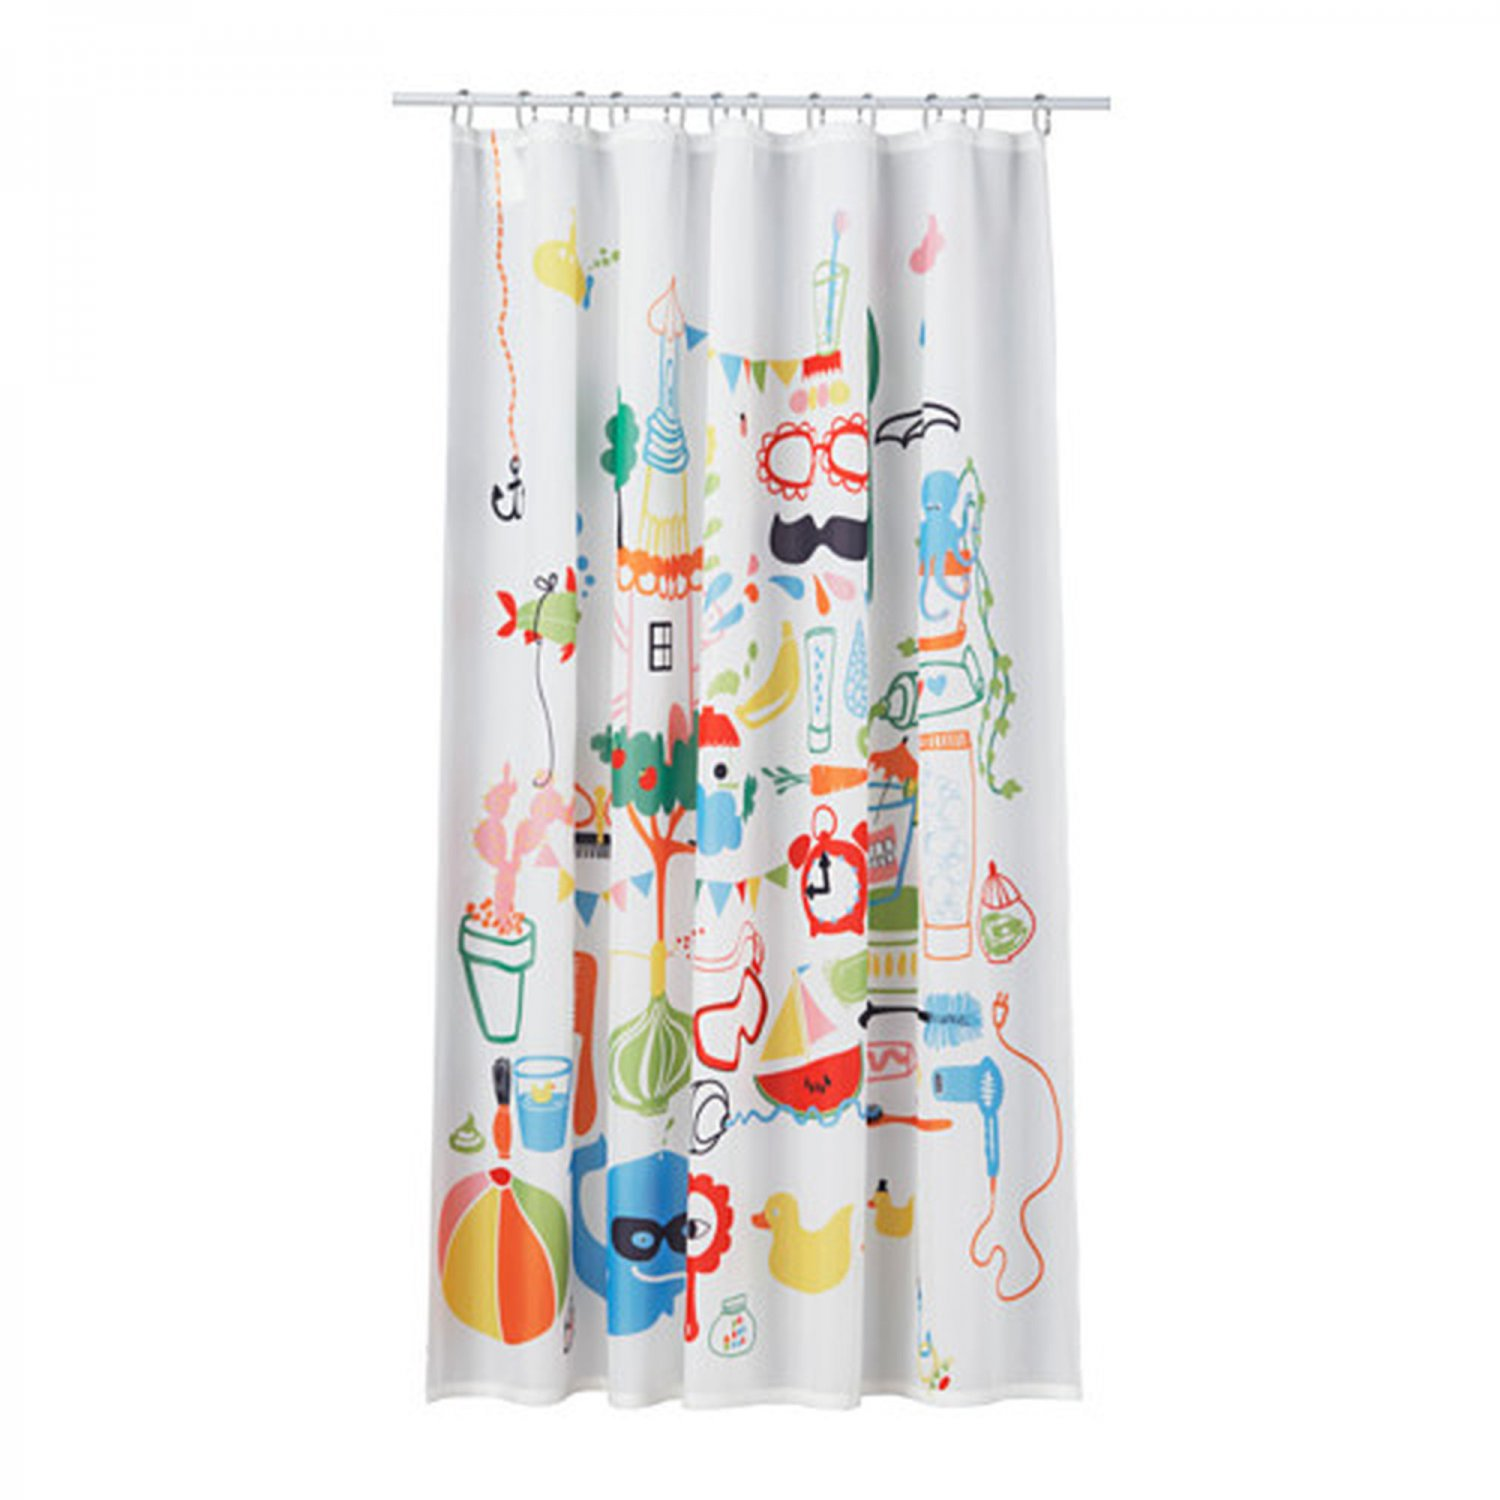 Shower Curtains At Ikea Shower Curtains at Bed Bath an